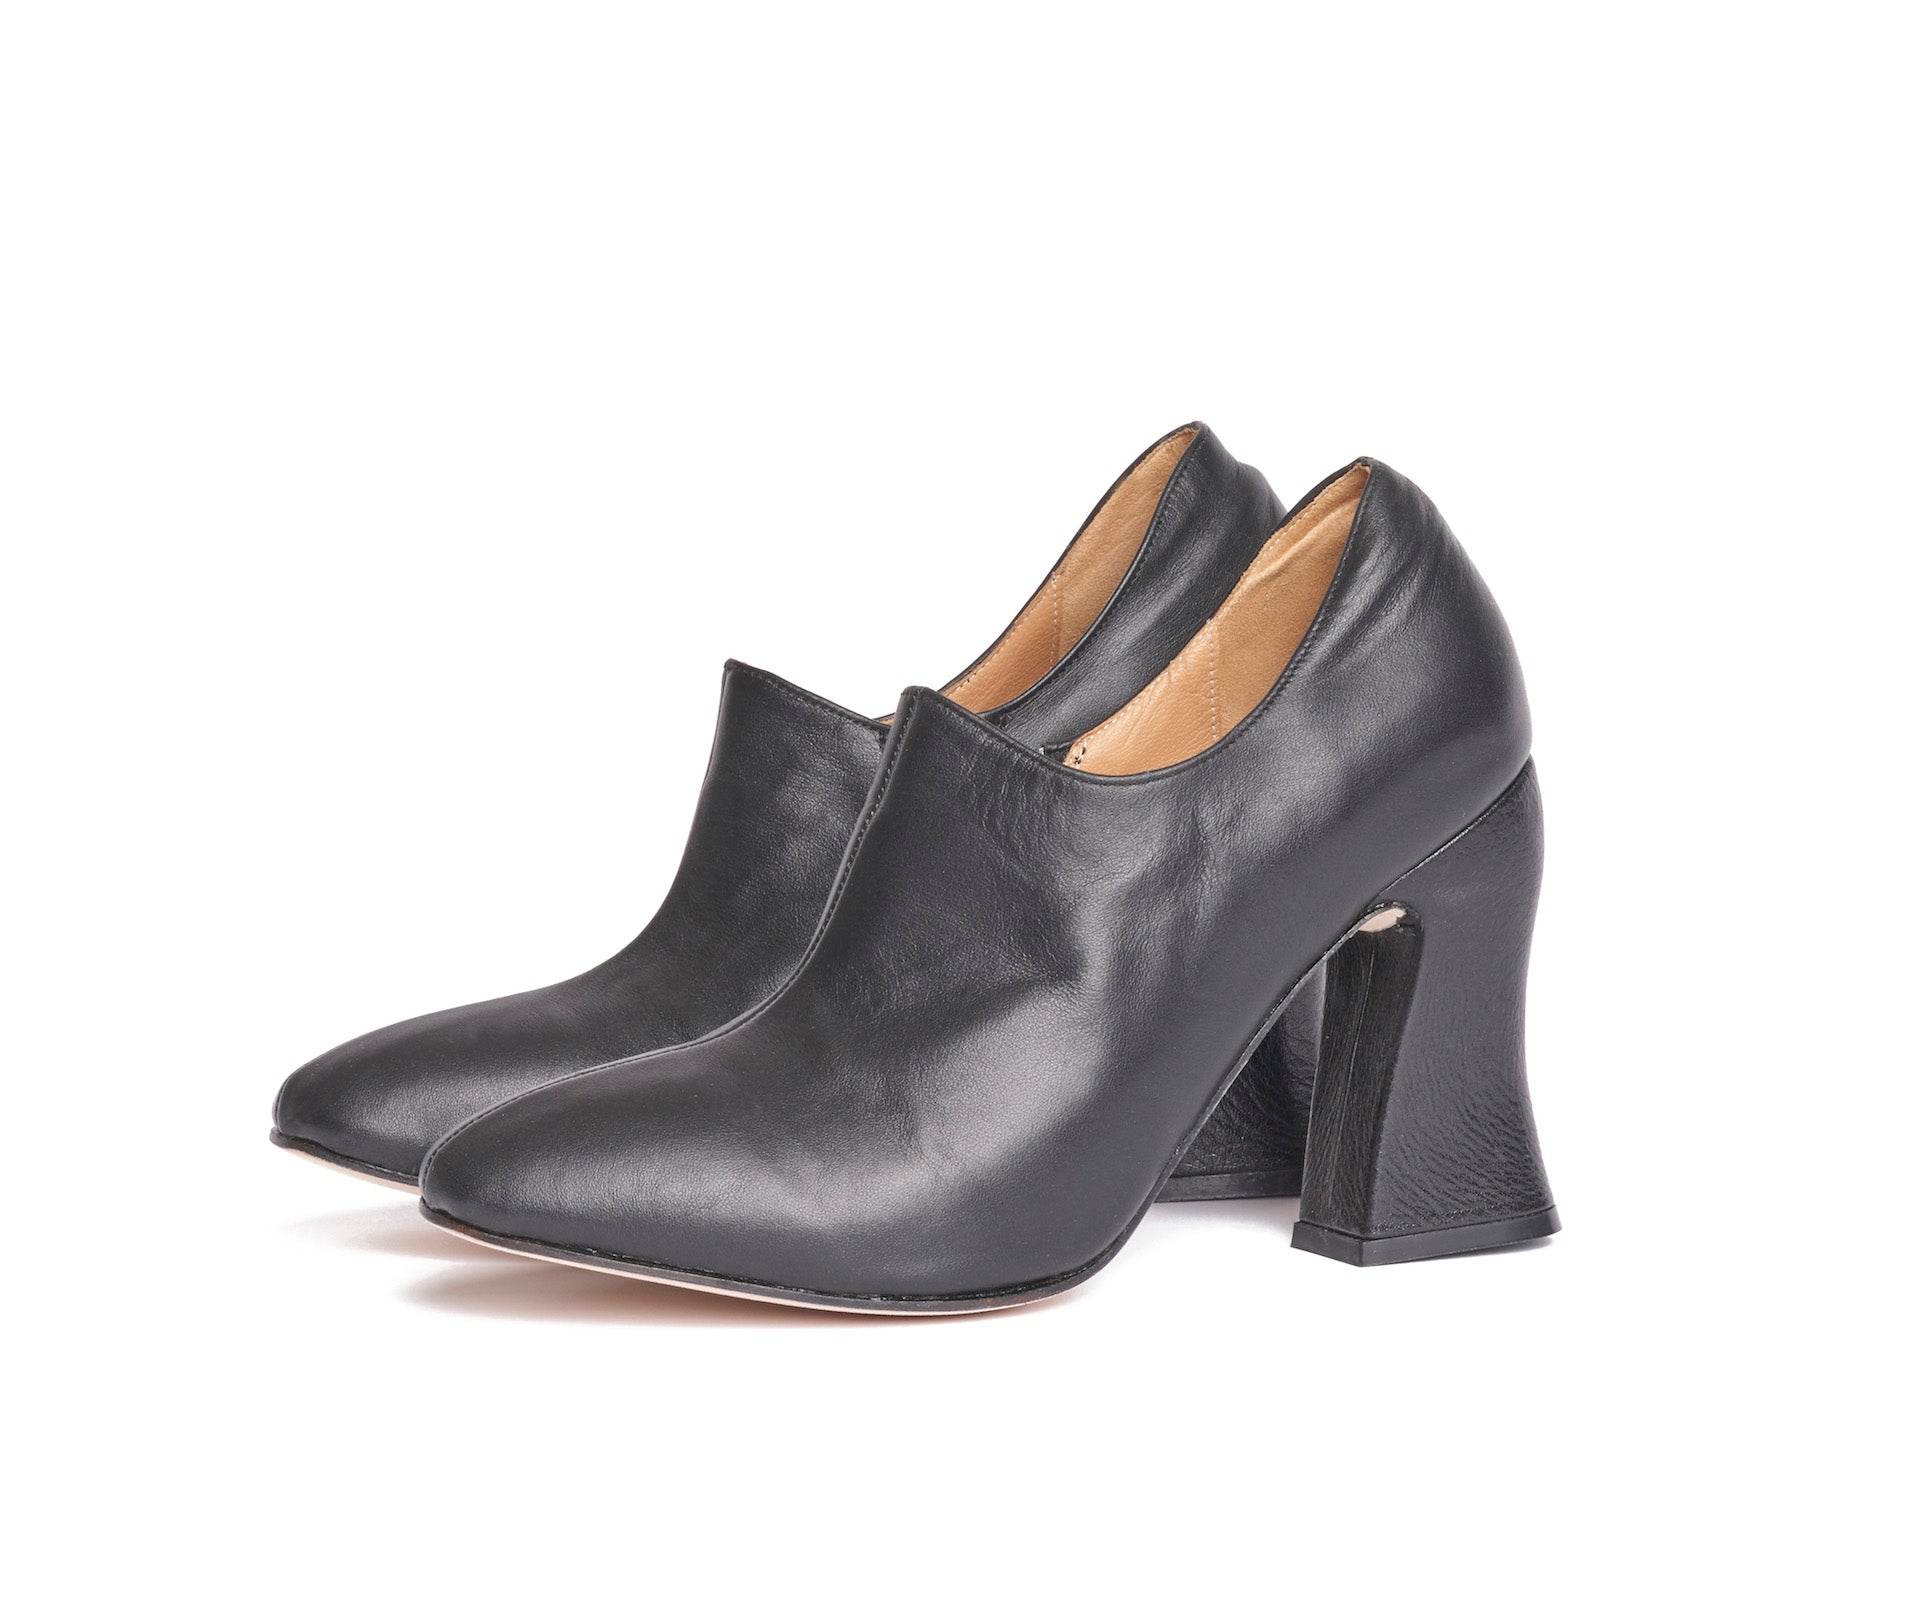 dialion curved heel bootie - black textured leather